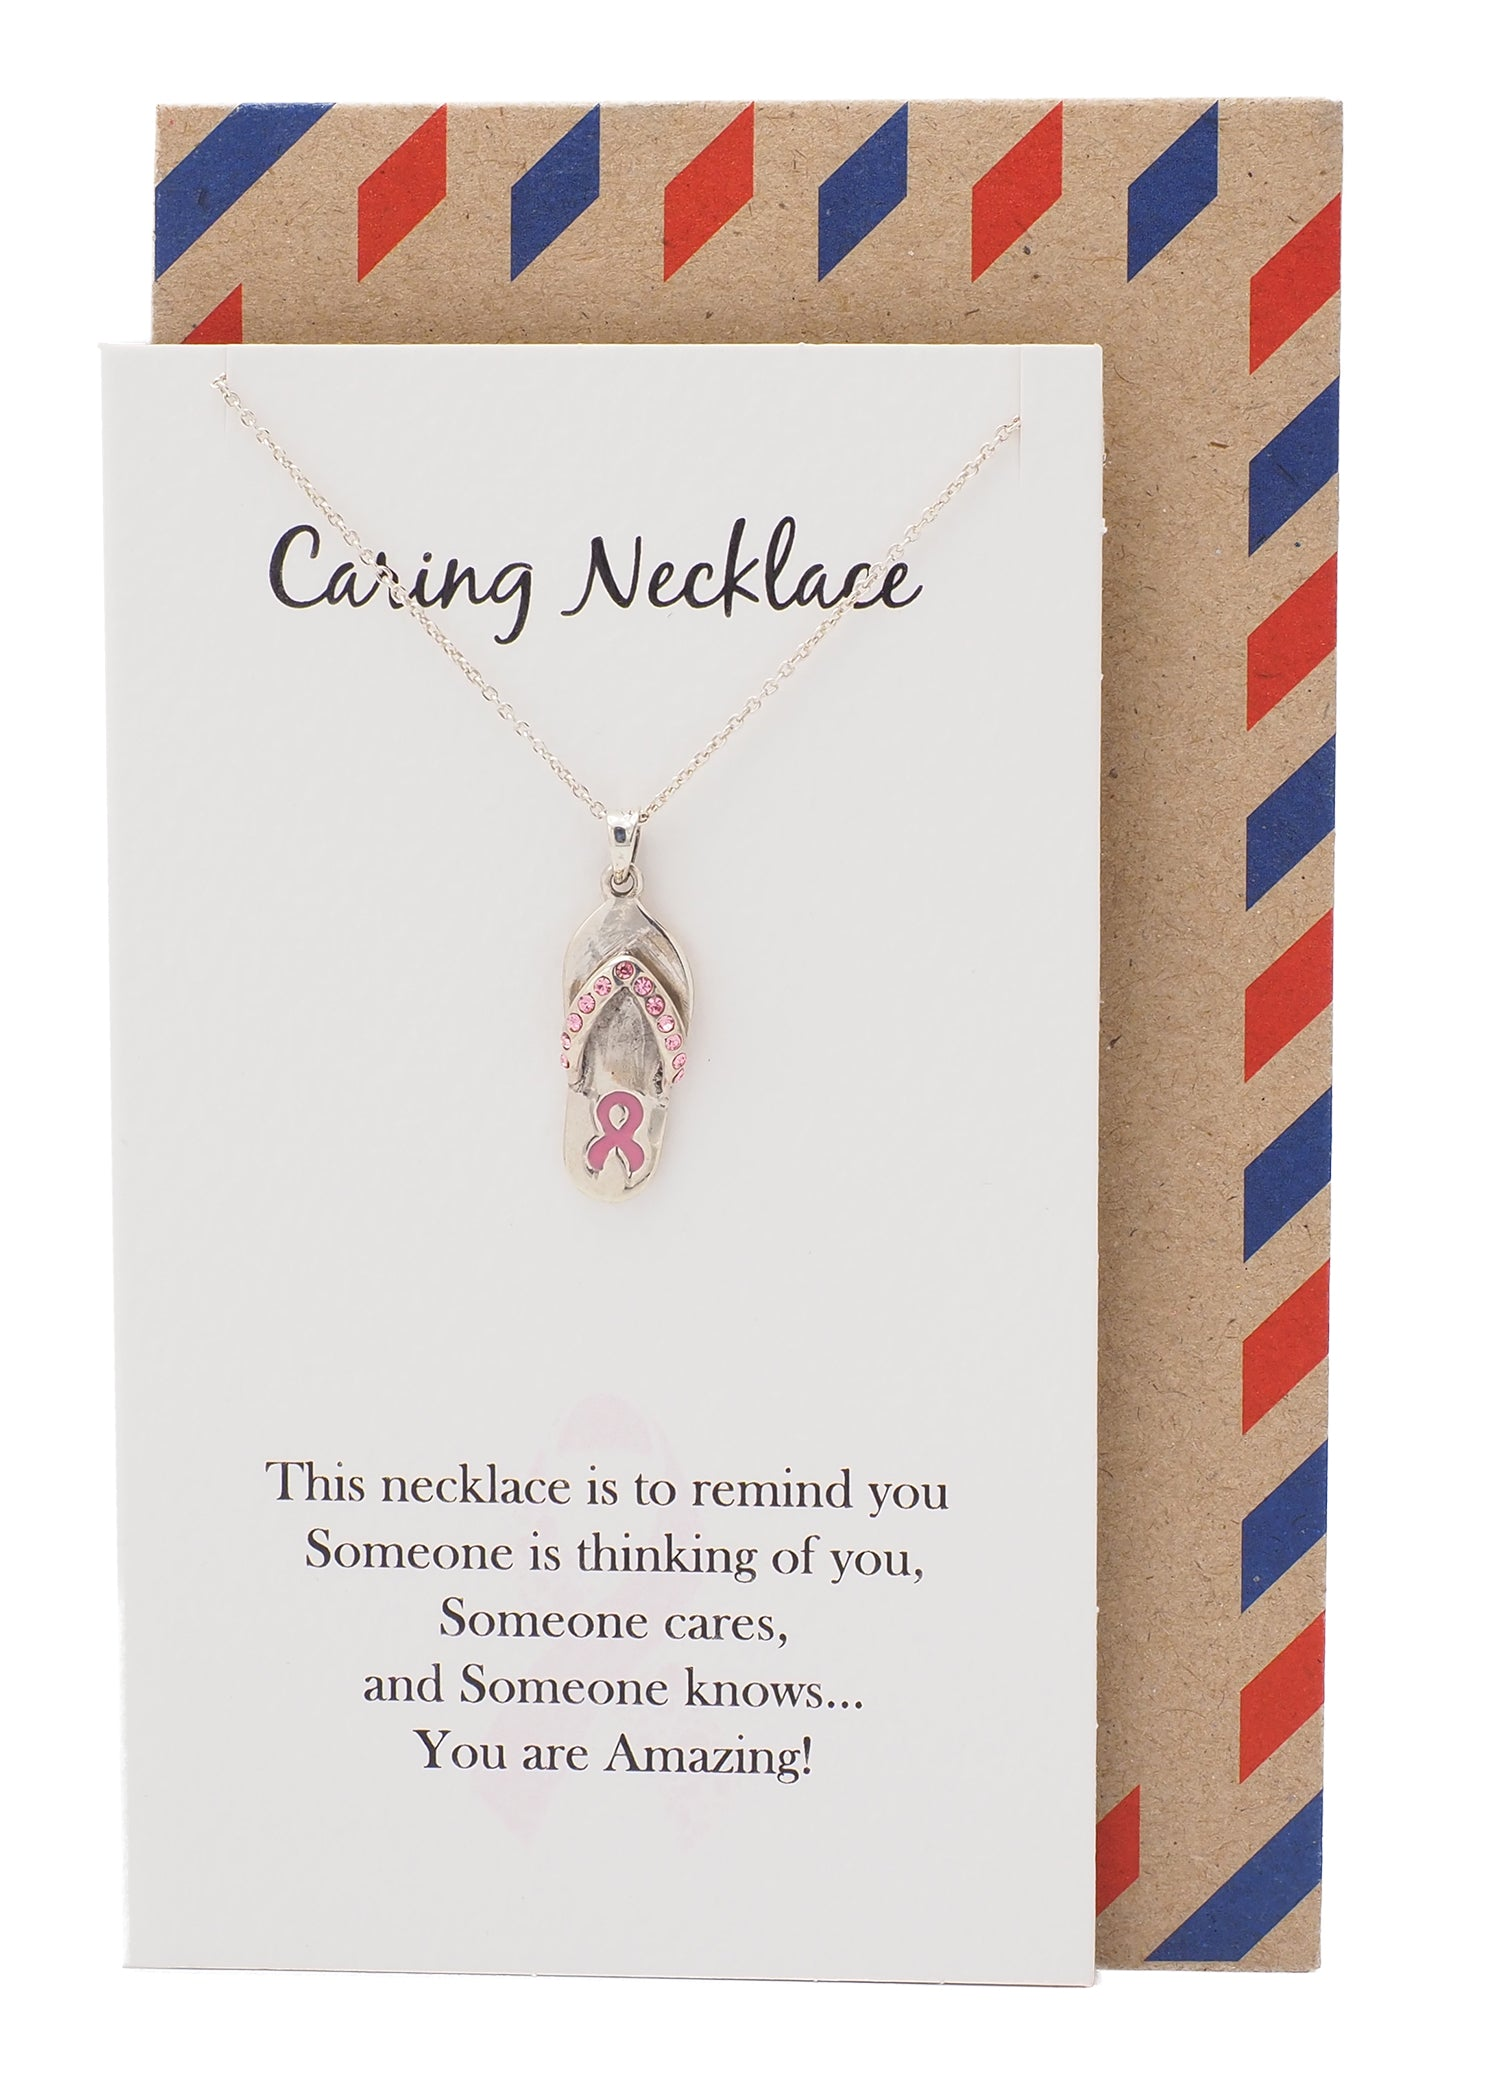 Caring Necklace